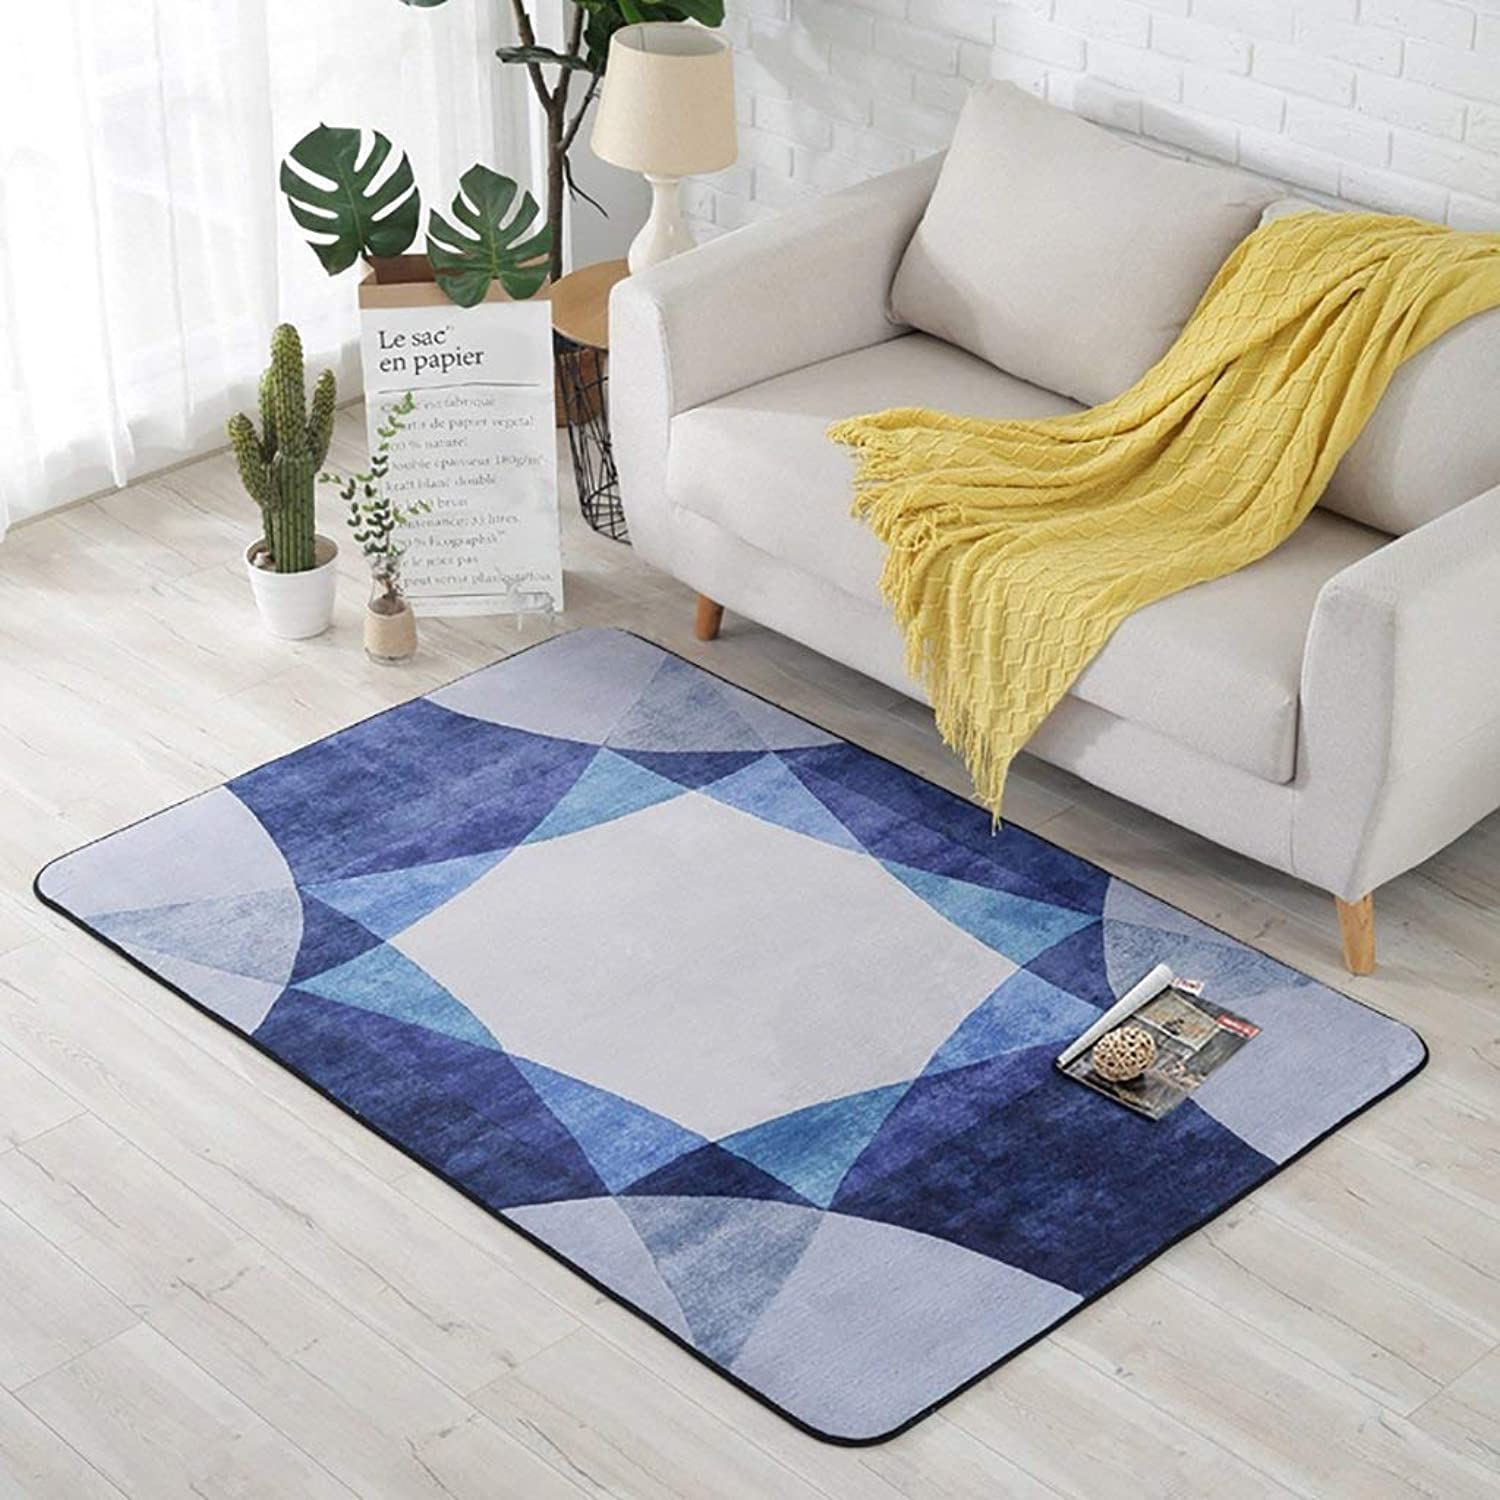 Royare Home Decorations mat Creative Light Nordic Modern Geometry Carpets Sofa Coffee Table Living Room Rug Bedroom Bedside Rectangle Home Mats (Size   100cm150cm)